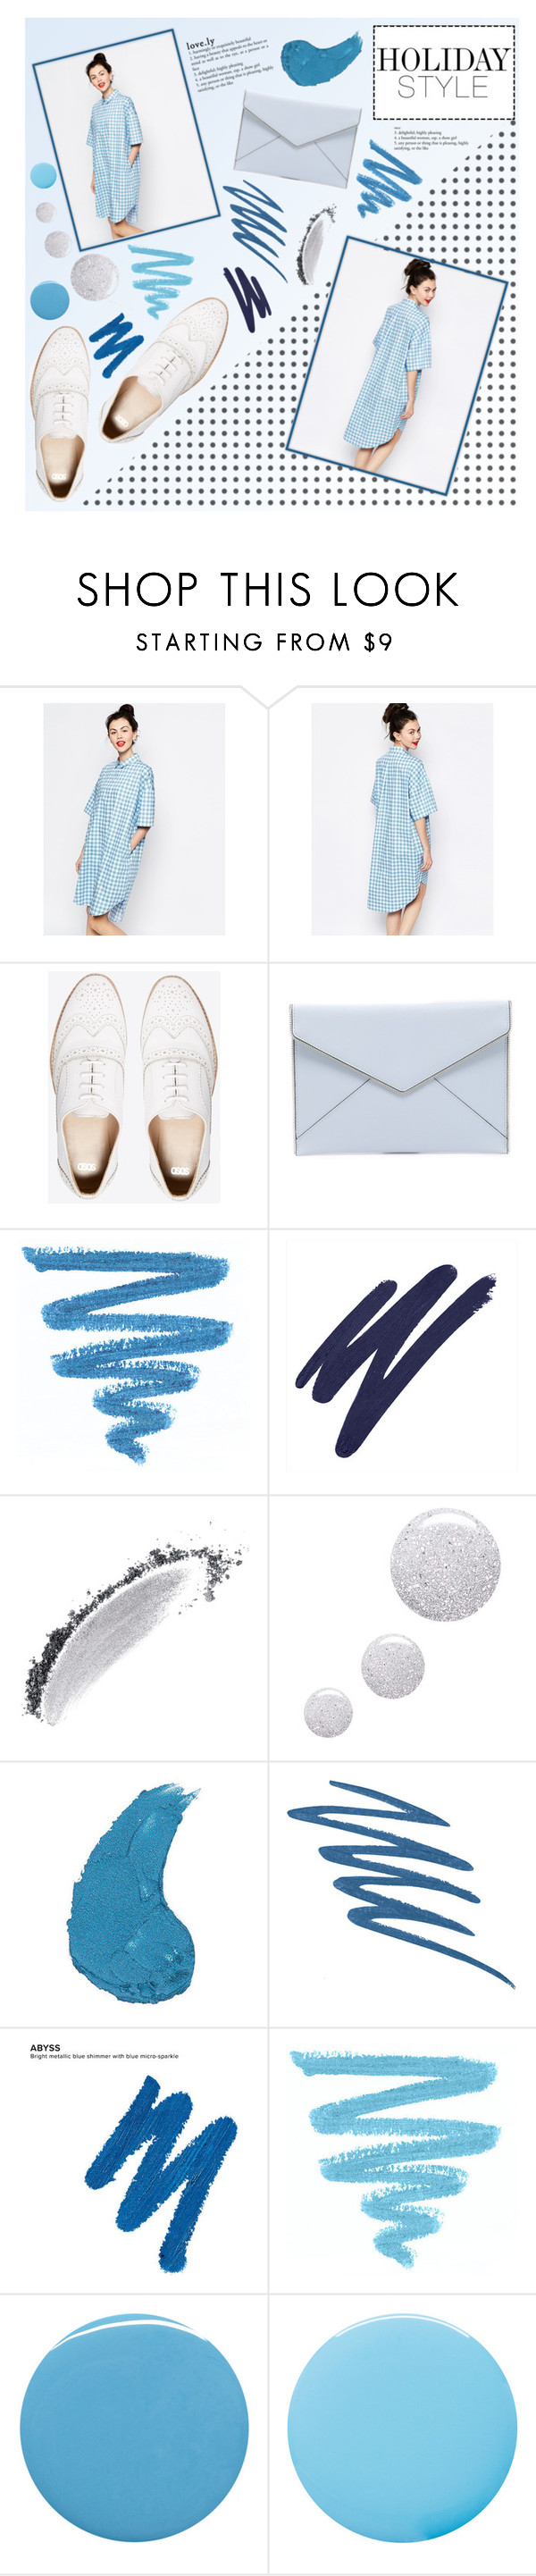 """Oversized dress"" by eks02 ❤ liked on Polyvore featuring Monki, ASOS, Rebecca Minkoff, By Terry, NARS Cosmetics, Topshop, Urban Decay, Deborah Lippmann and Smith & Cult"